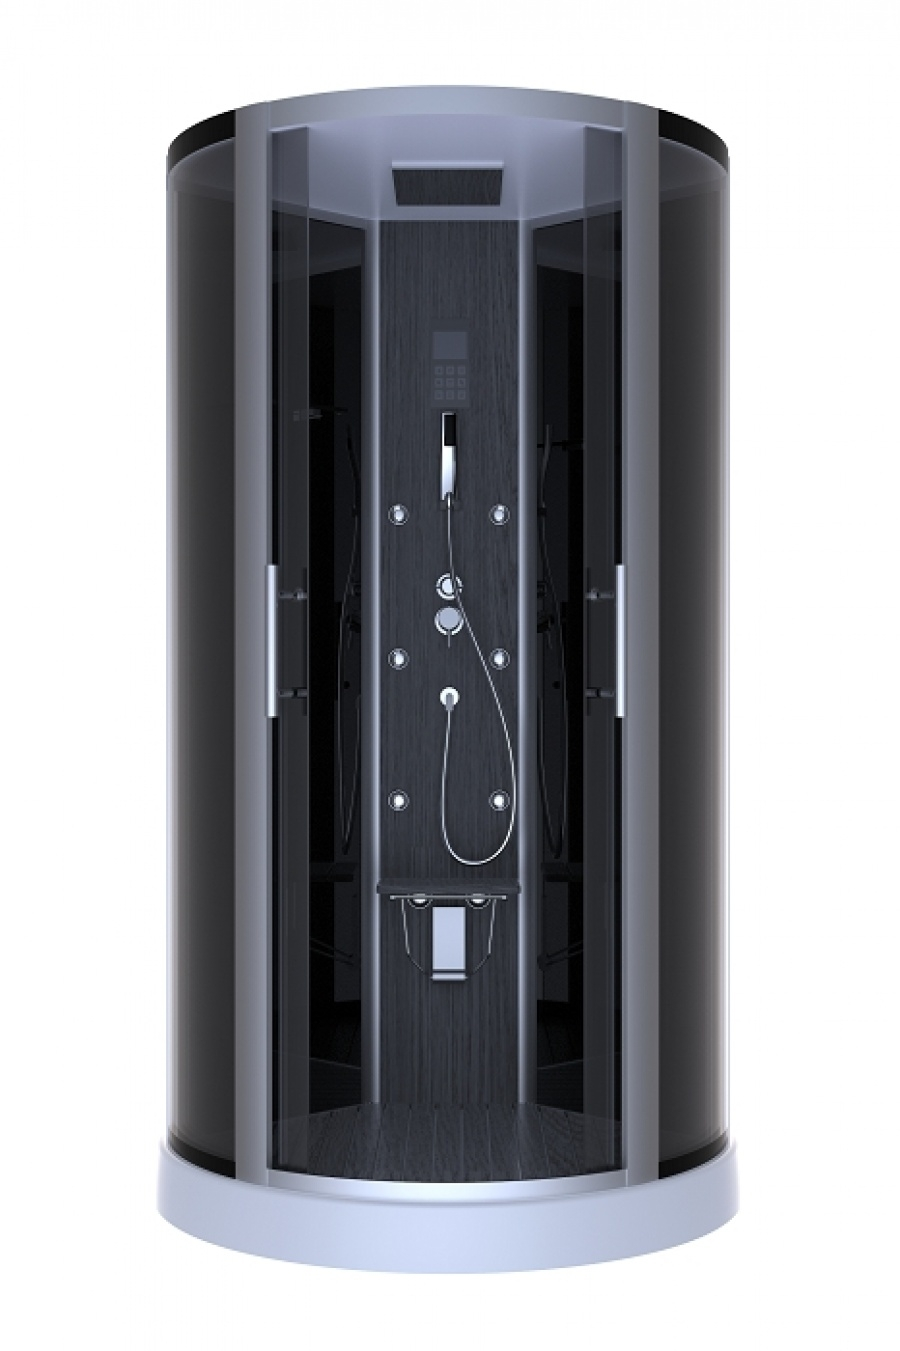 cabine de douche 1 4 rond dark night hammam 95cm aurlane meuble de salle de. Black Bedroom Furniture Sets. Home Design Ideas